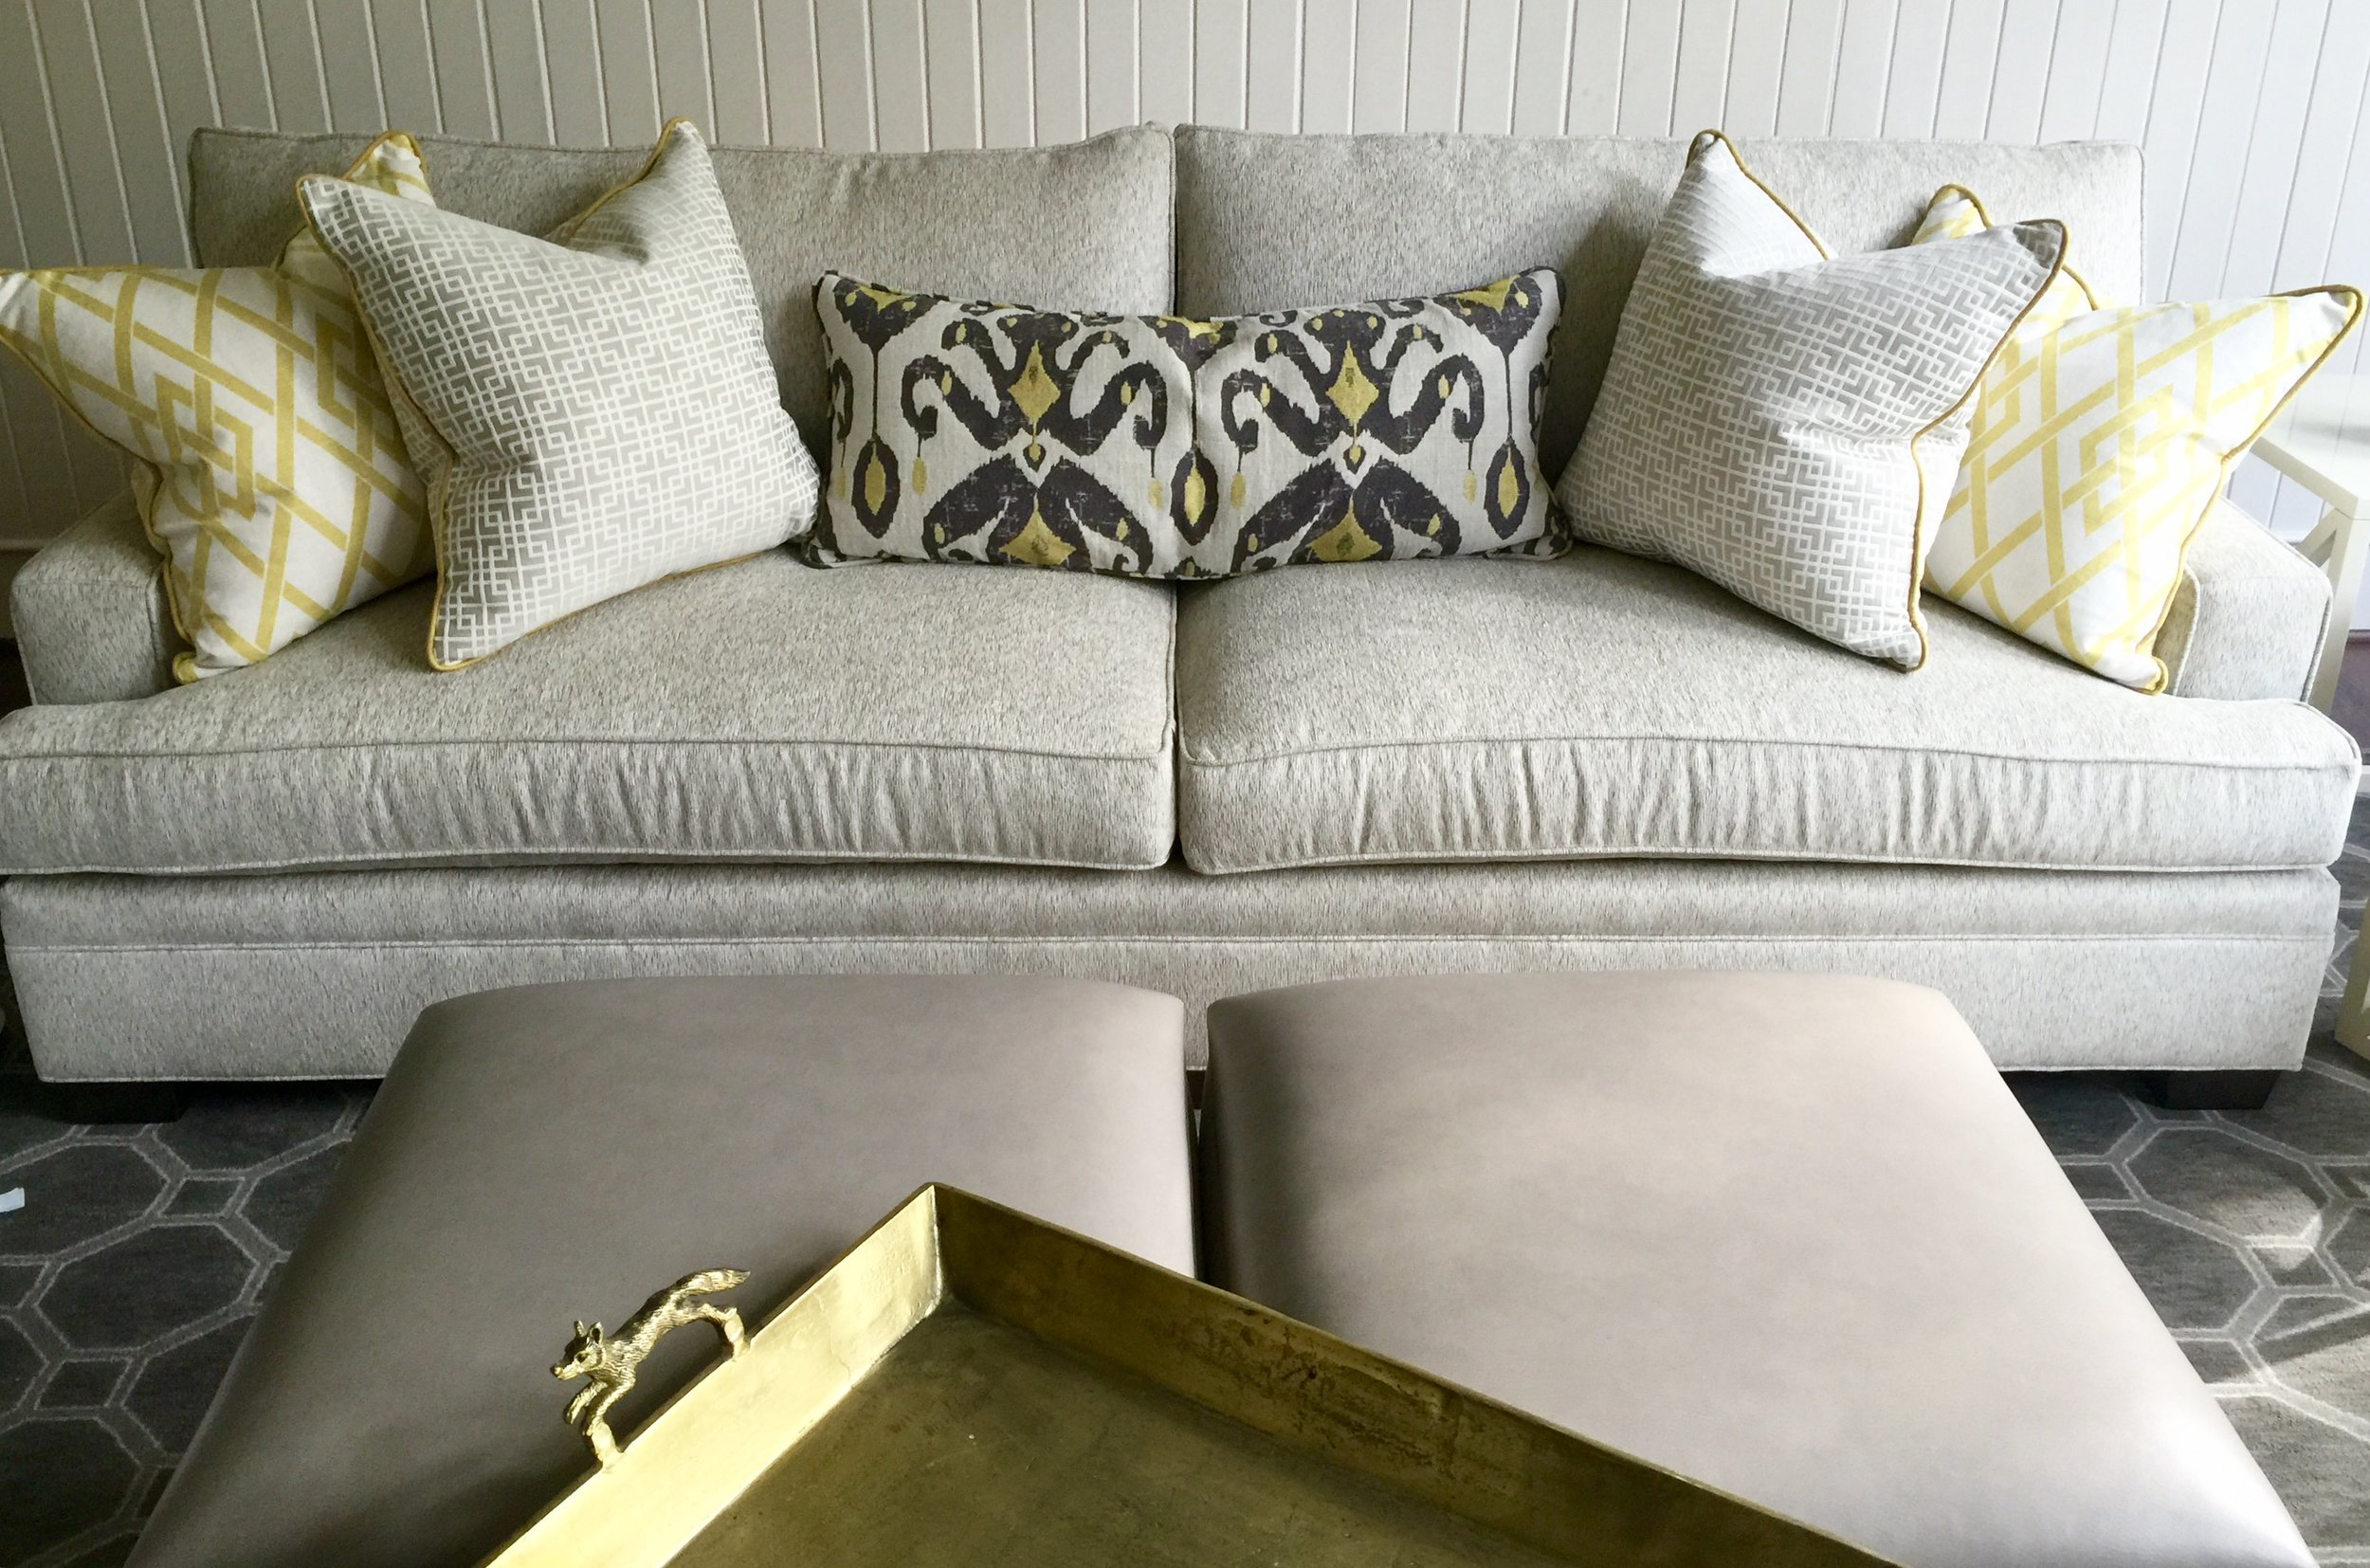 Custom pillows - 4 large with long lumbar, Designer: Carla Aston #pillows #sofapillows